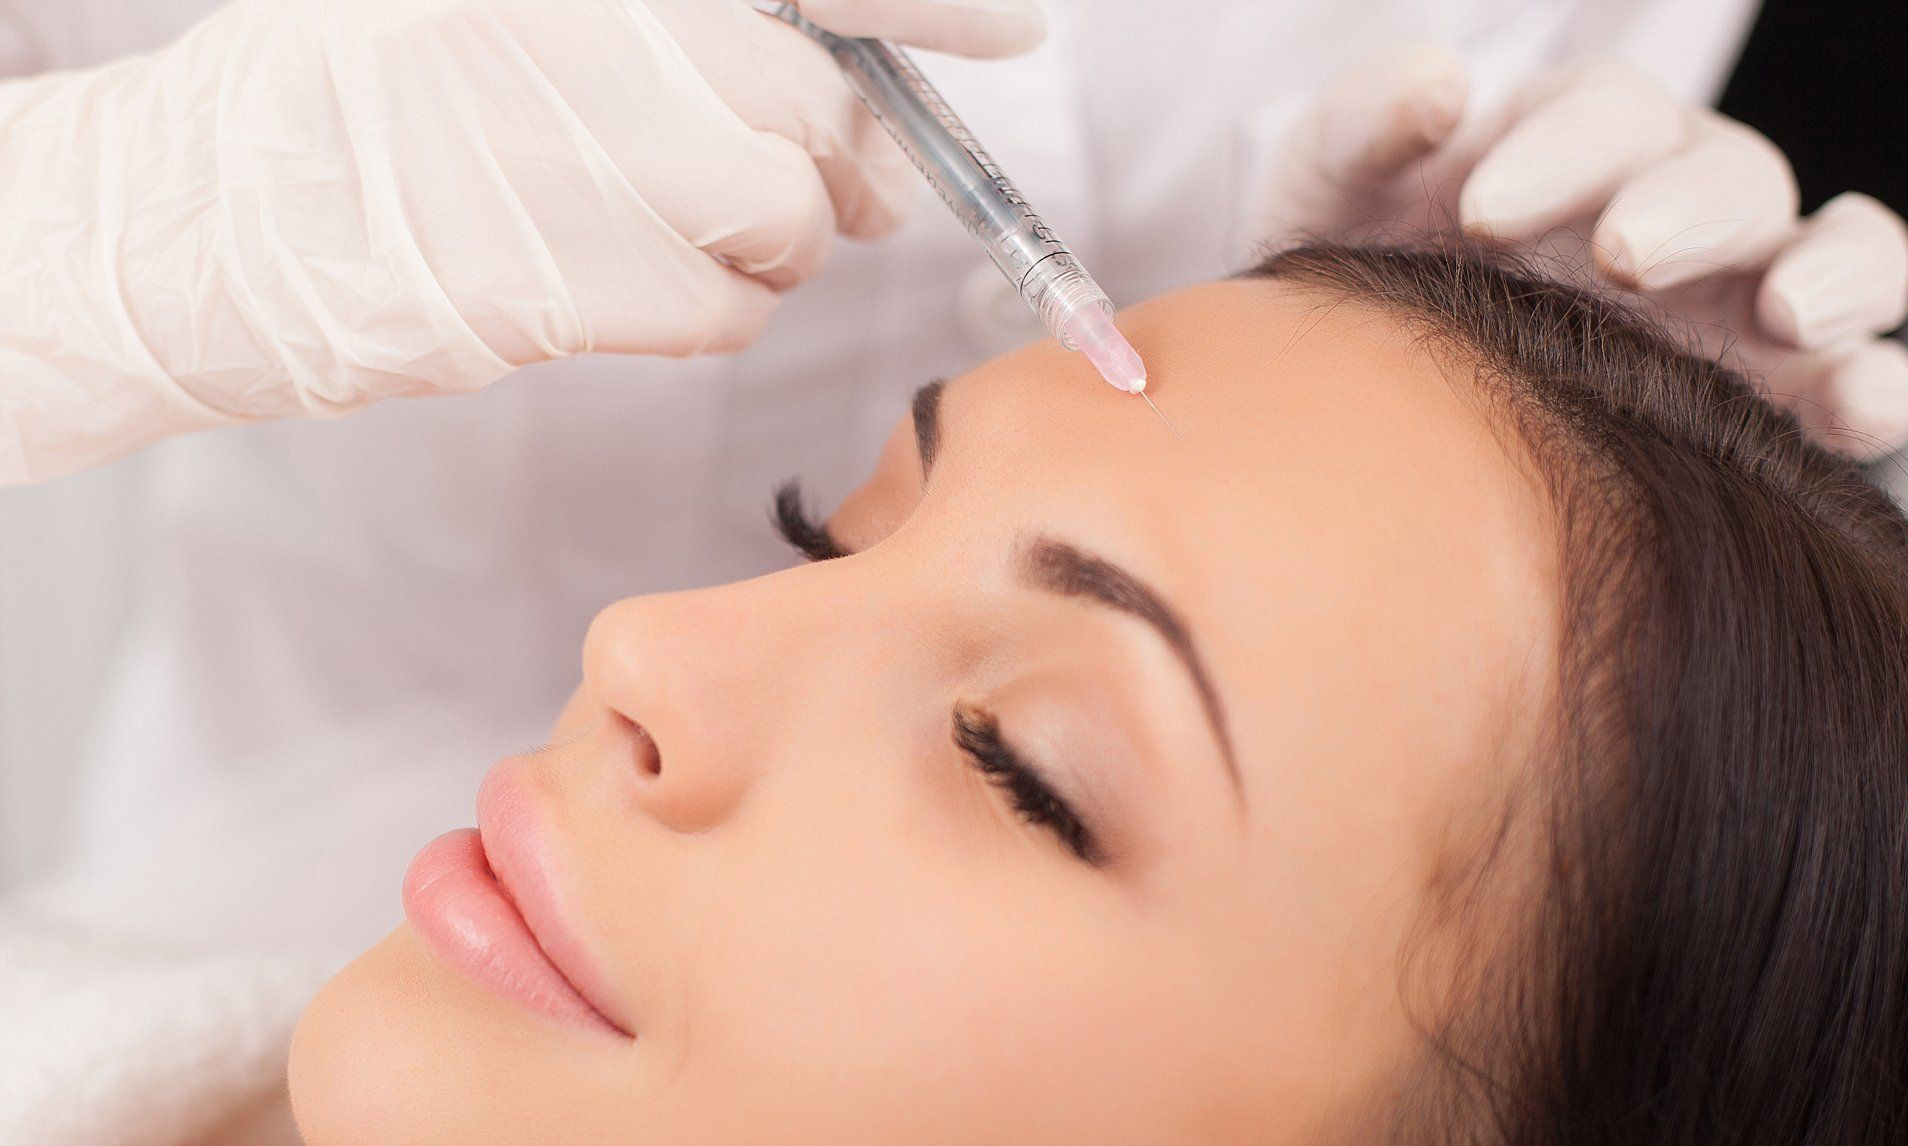 FDA finally approves Botox injections to erase forehead